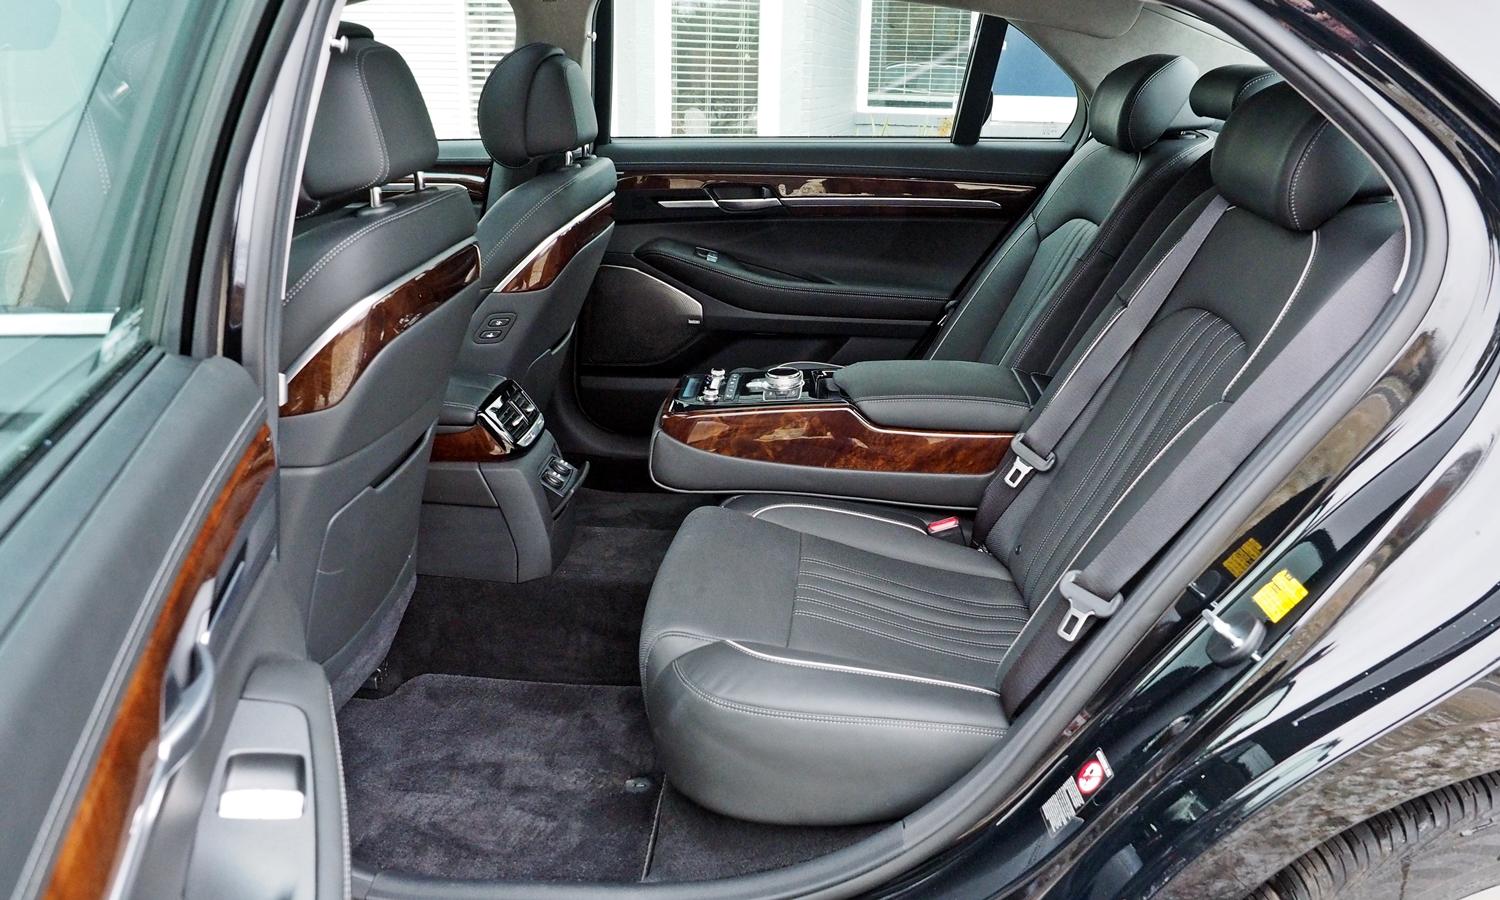 G90 Reviews: 2017 Genesis G90 rear seat, armrest down